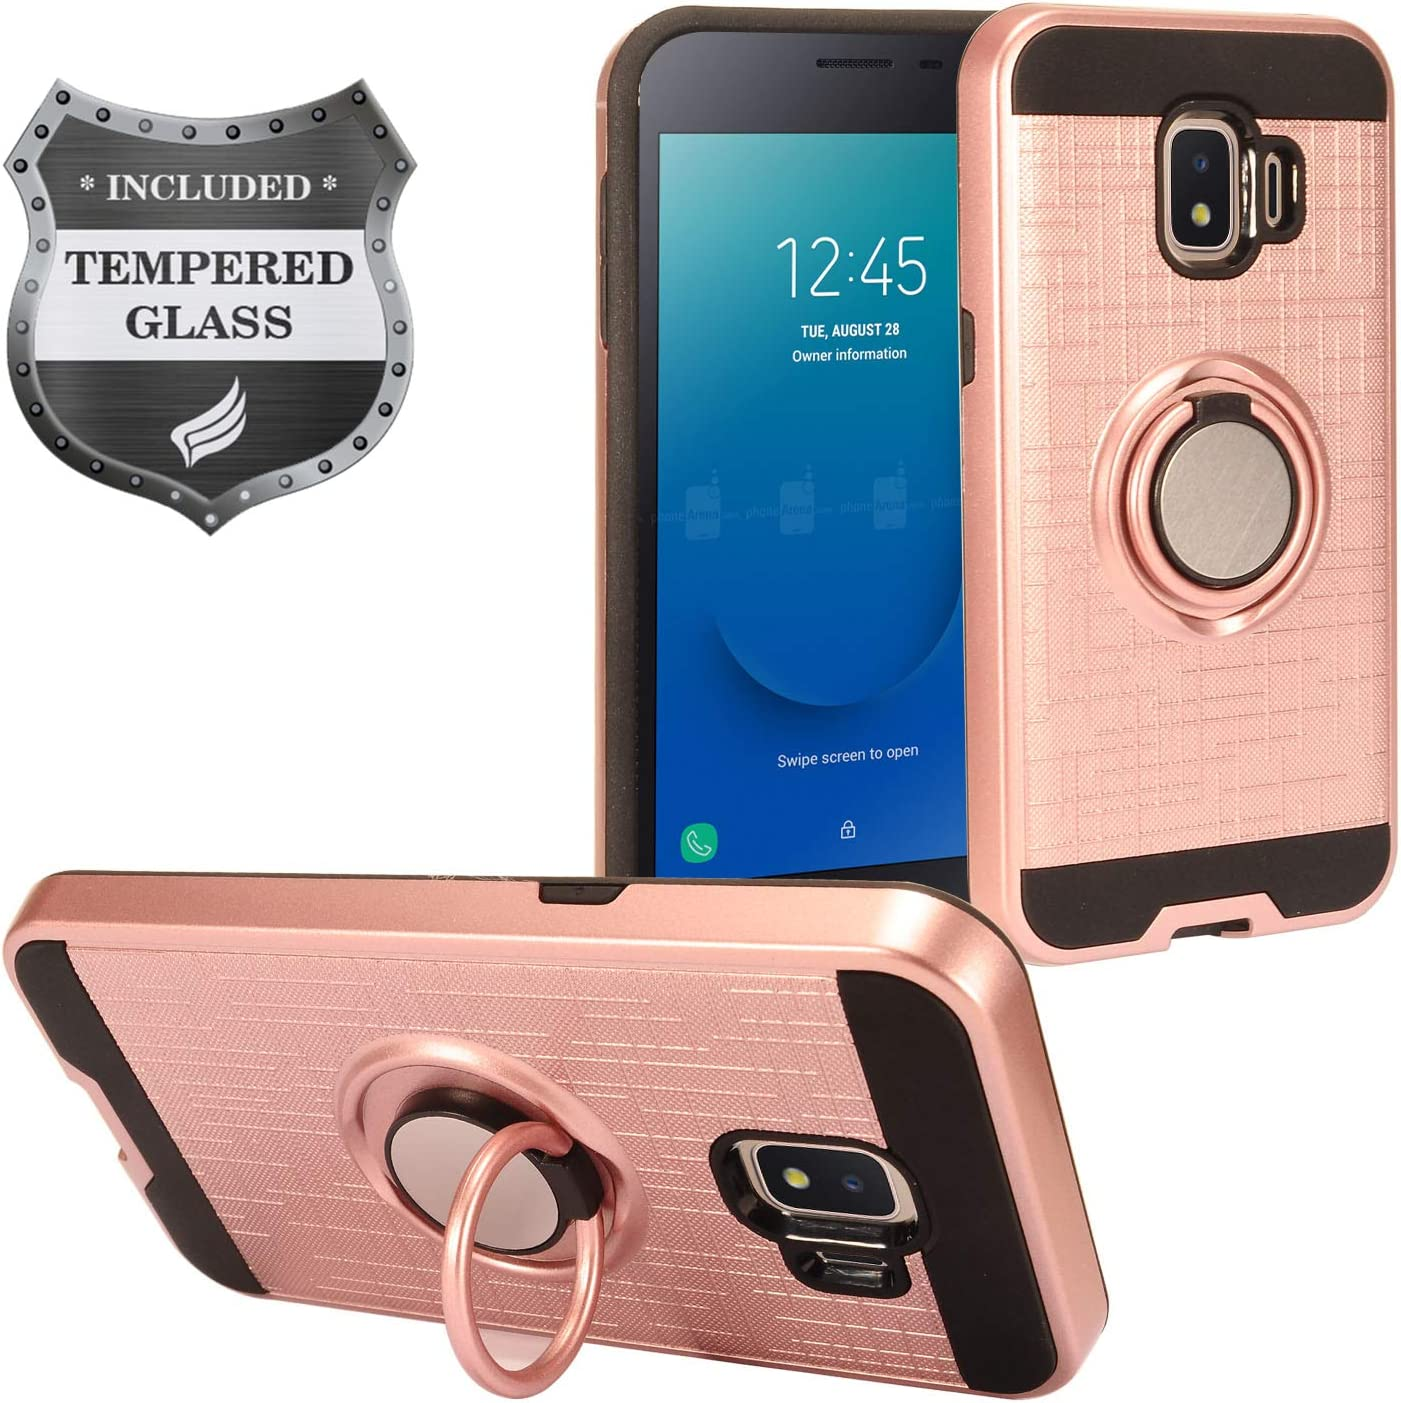 Eaglecell - Compatible with Samsung Galaxy J2 (MetroPCS), J2 Pure, J2 Dash, J2 Shine, J2 Core (2018), SM-J260 - Hybrid Hard Case w/Ring Stand + Tempered Glass Screen Protector - RS2 Rosegold